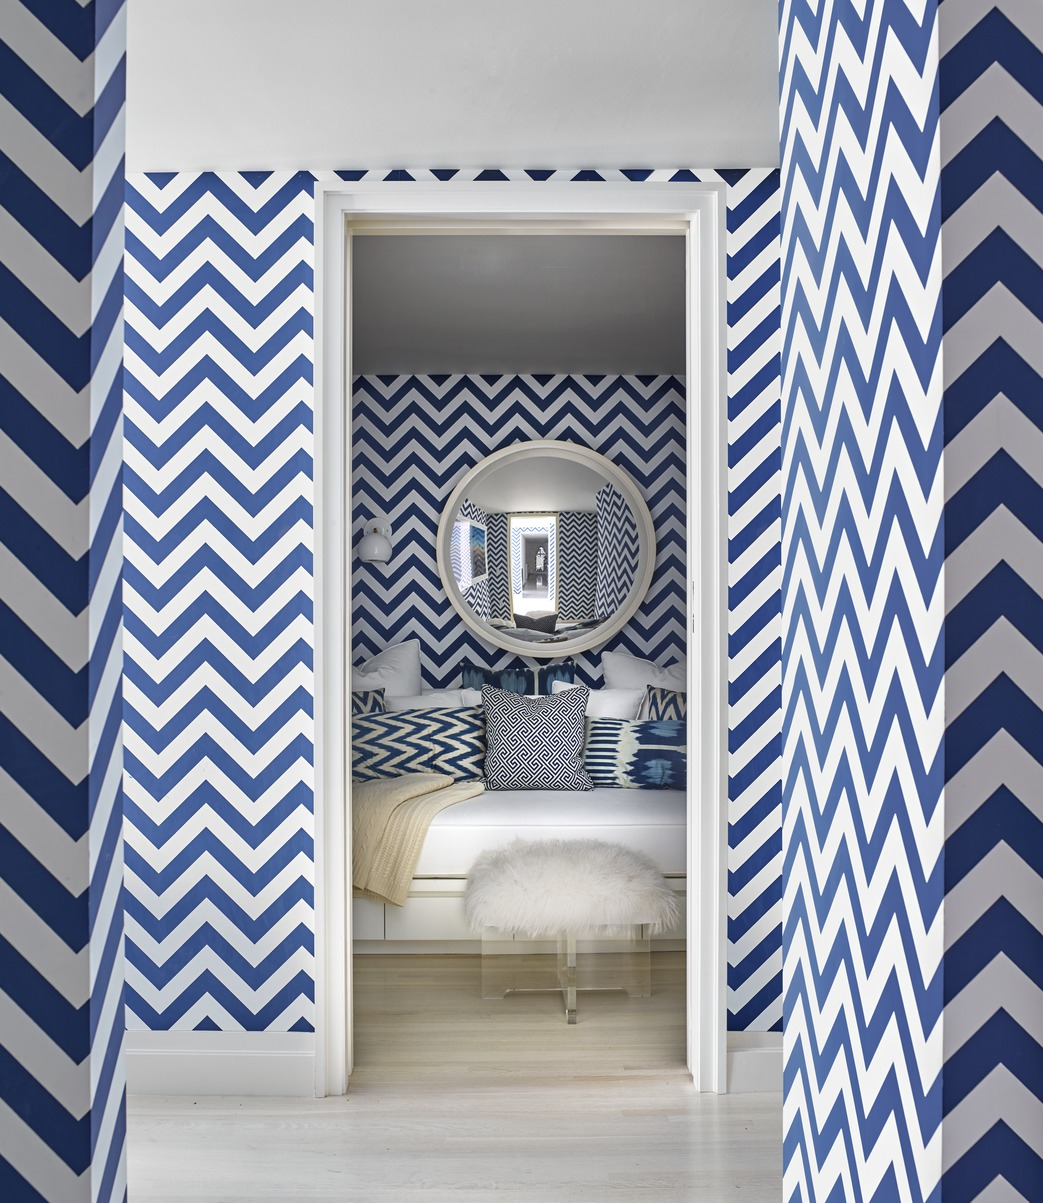 The-in-a-guest-bedroom-is-by-Schumacher-and-the-custom-made-daybe-wallpaper-wp58010101-1